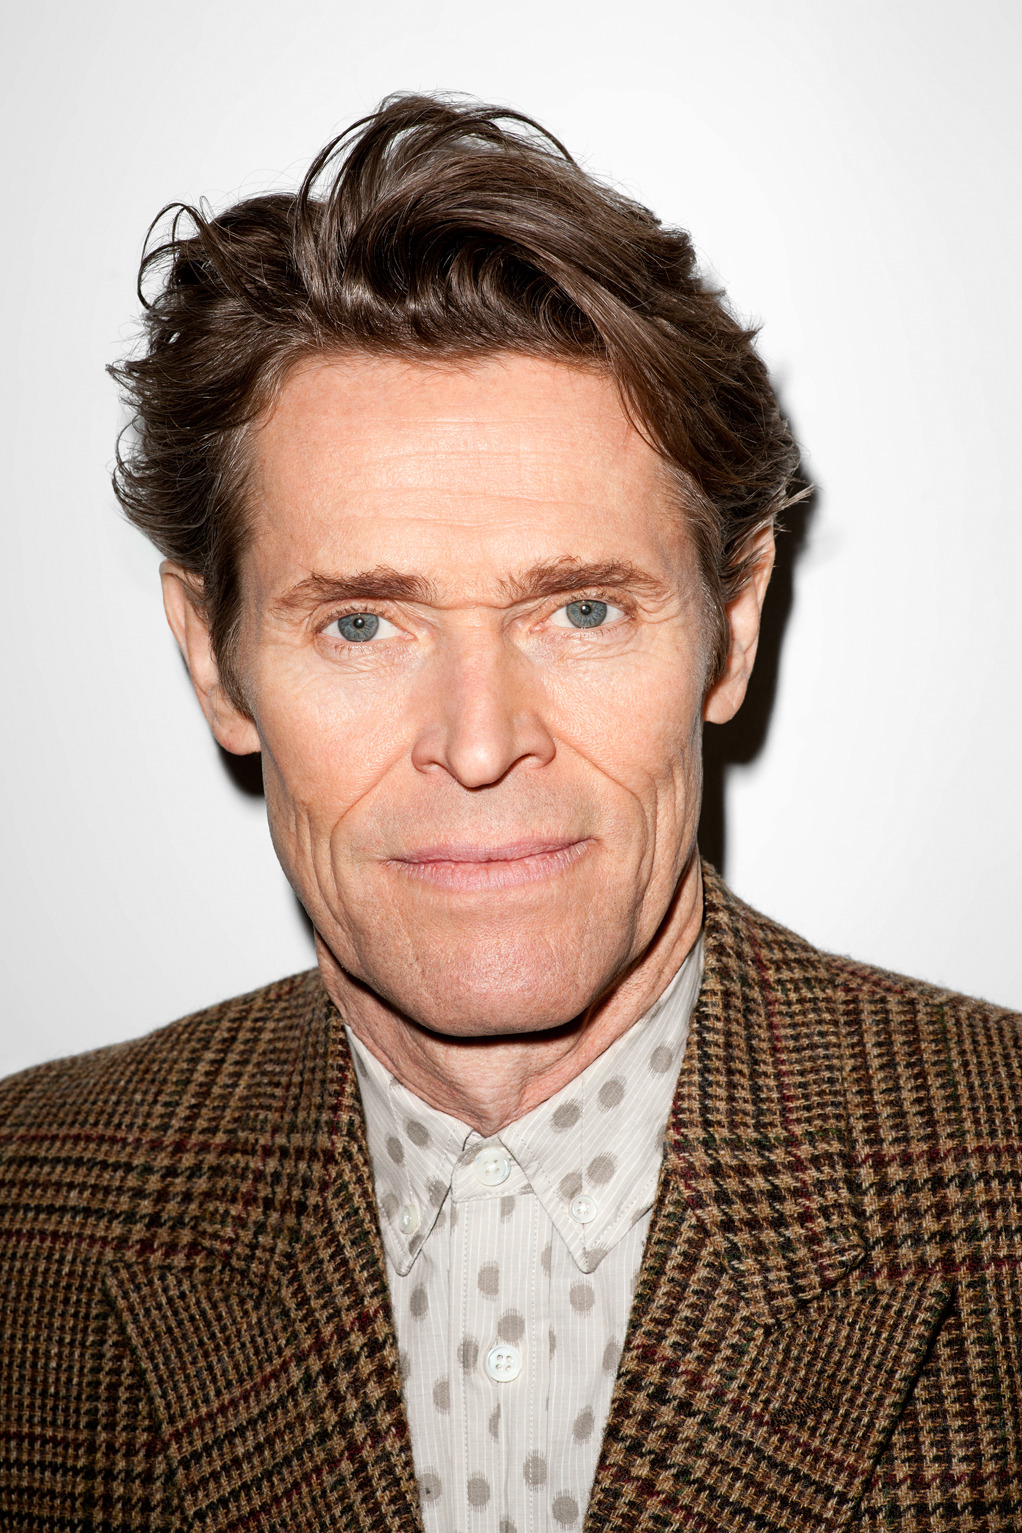 terrysdiary:  Willem Dafoe at my studio #3  all of his shots by terry are so good i am tempted to reblog them all